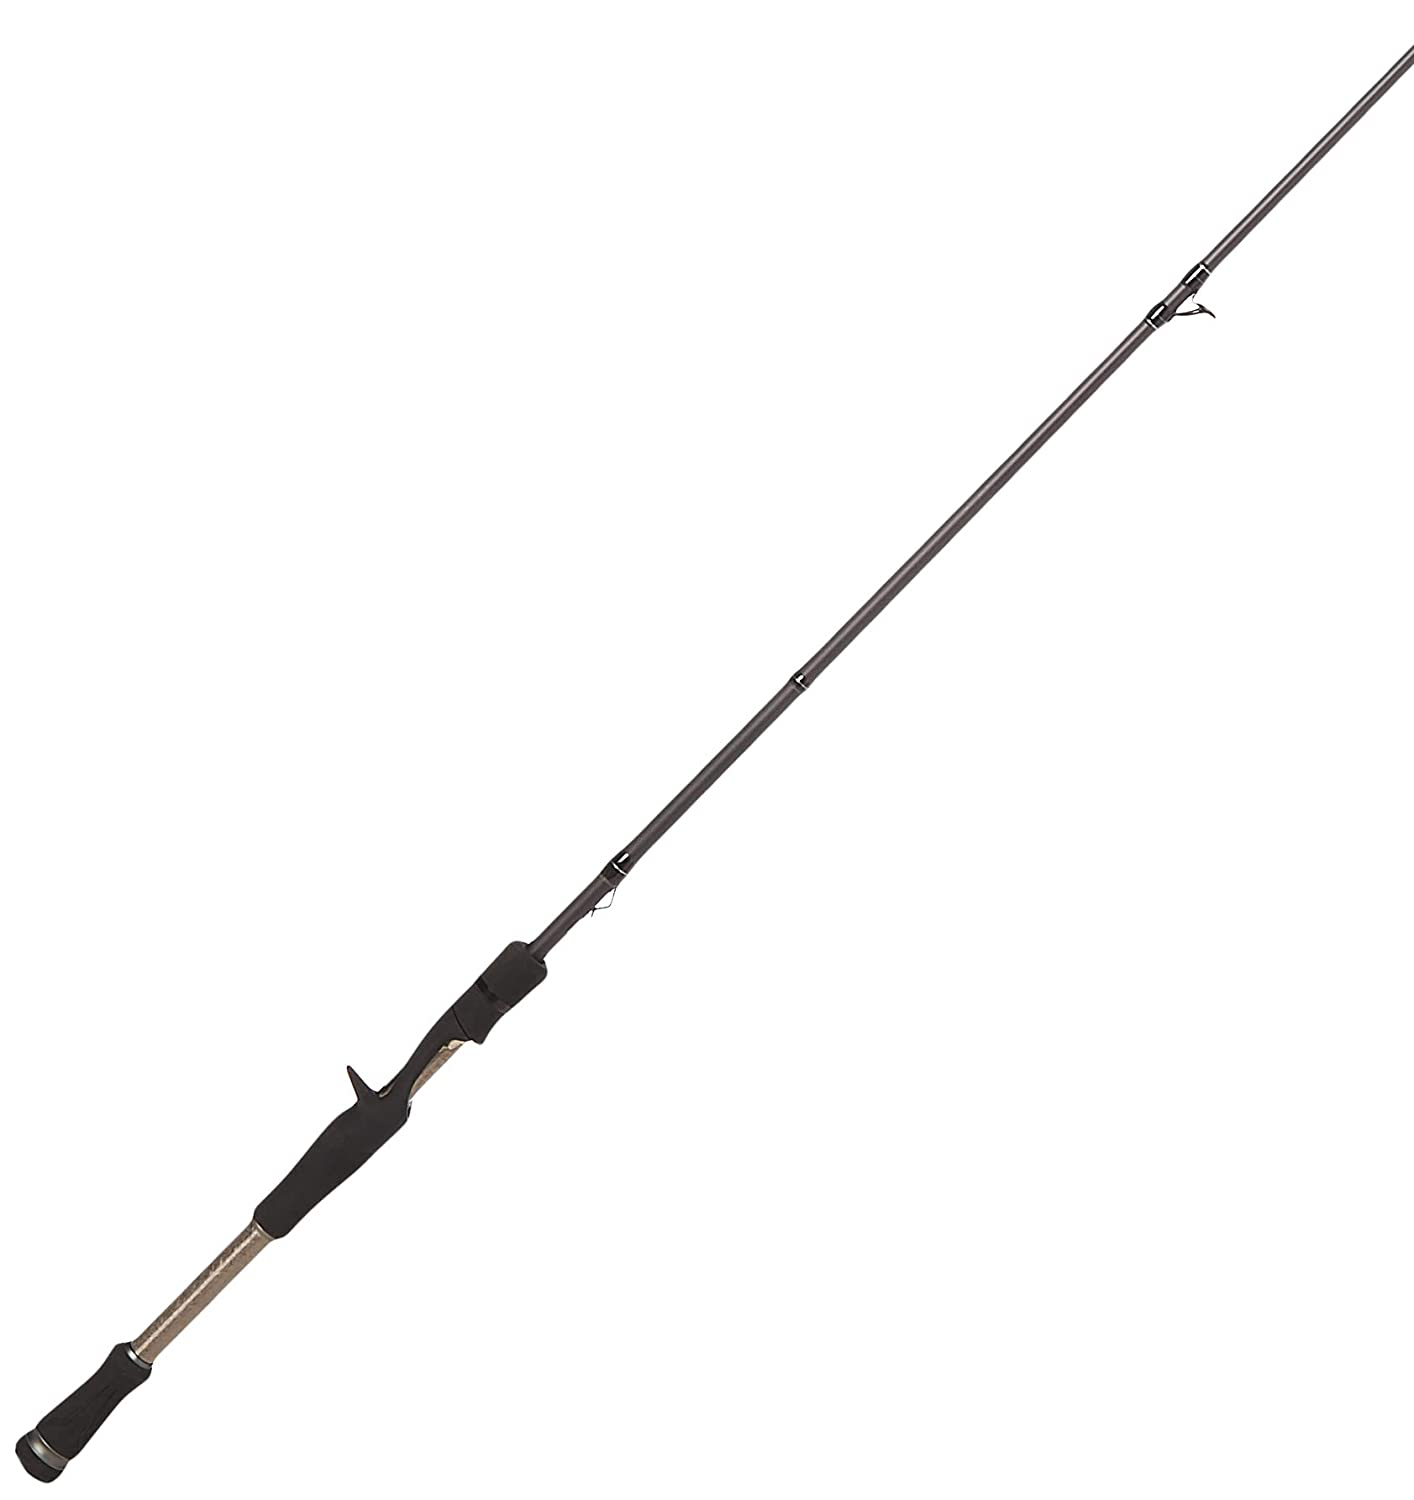 Maxcatch Premier Fly Fishing Rod with Avid Fly Reel and Rod Case 3 4, 5 6, 7 8-weight Rod and Reel Combo